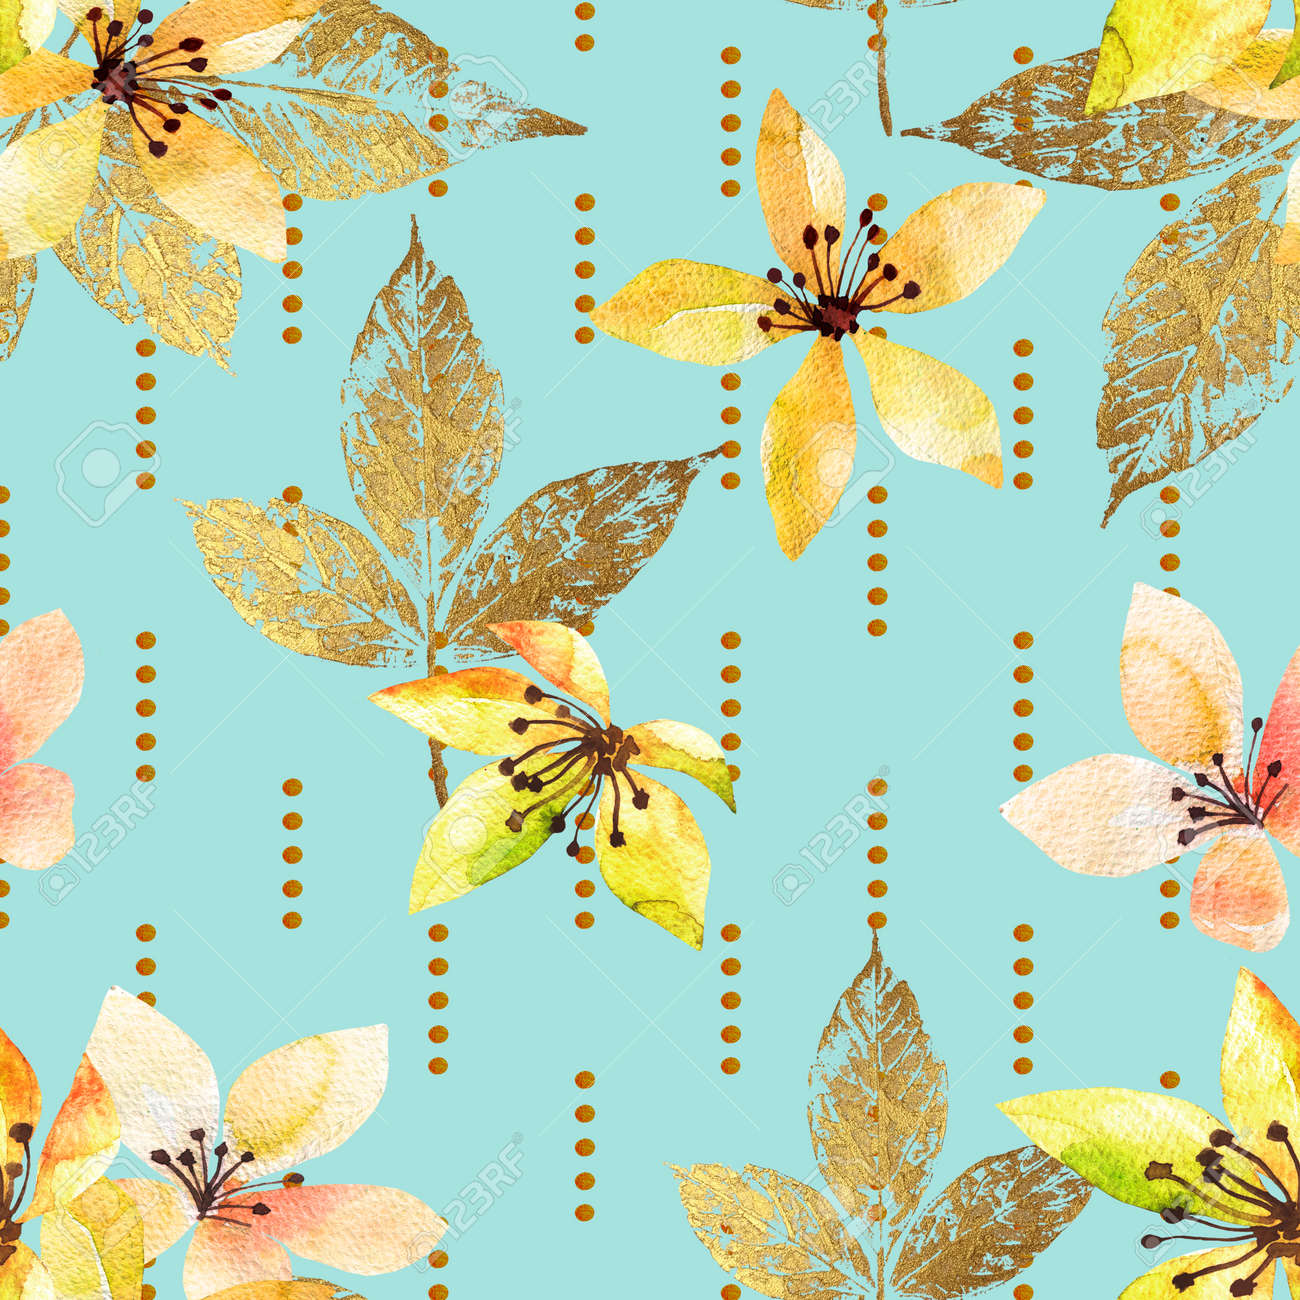 Floral seamless pattern with abstract leaves and flowers watercolor. Art illustration in hand painting style. Nature background. - 169460681